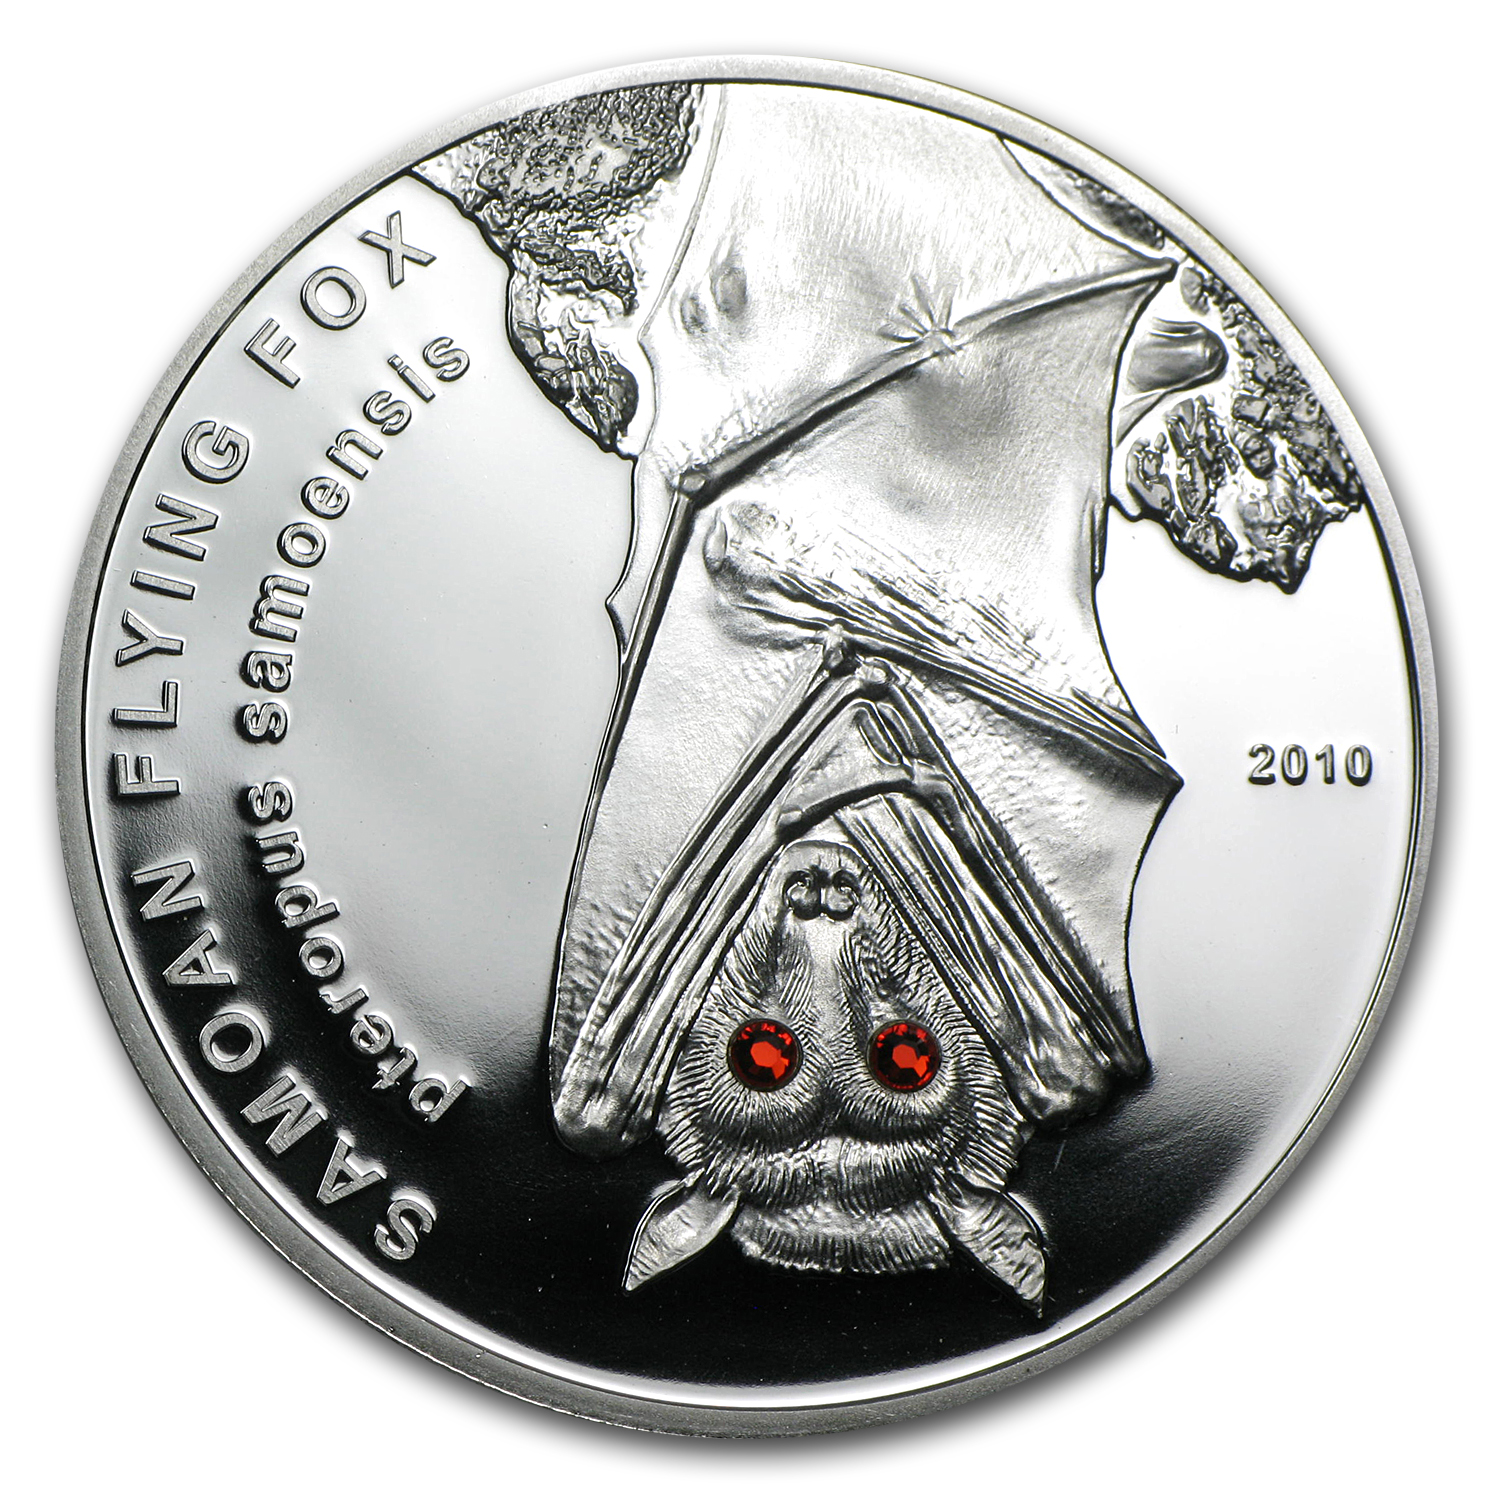 Samoa 2010 Proof Silver Swarovski $10 Flying Fox